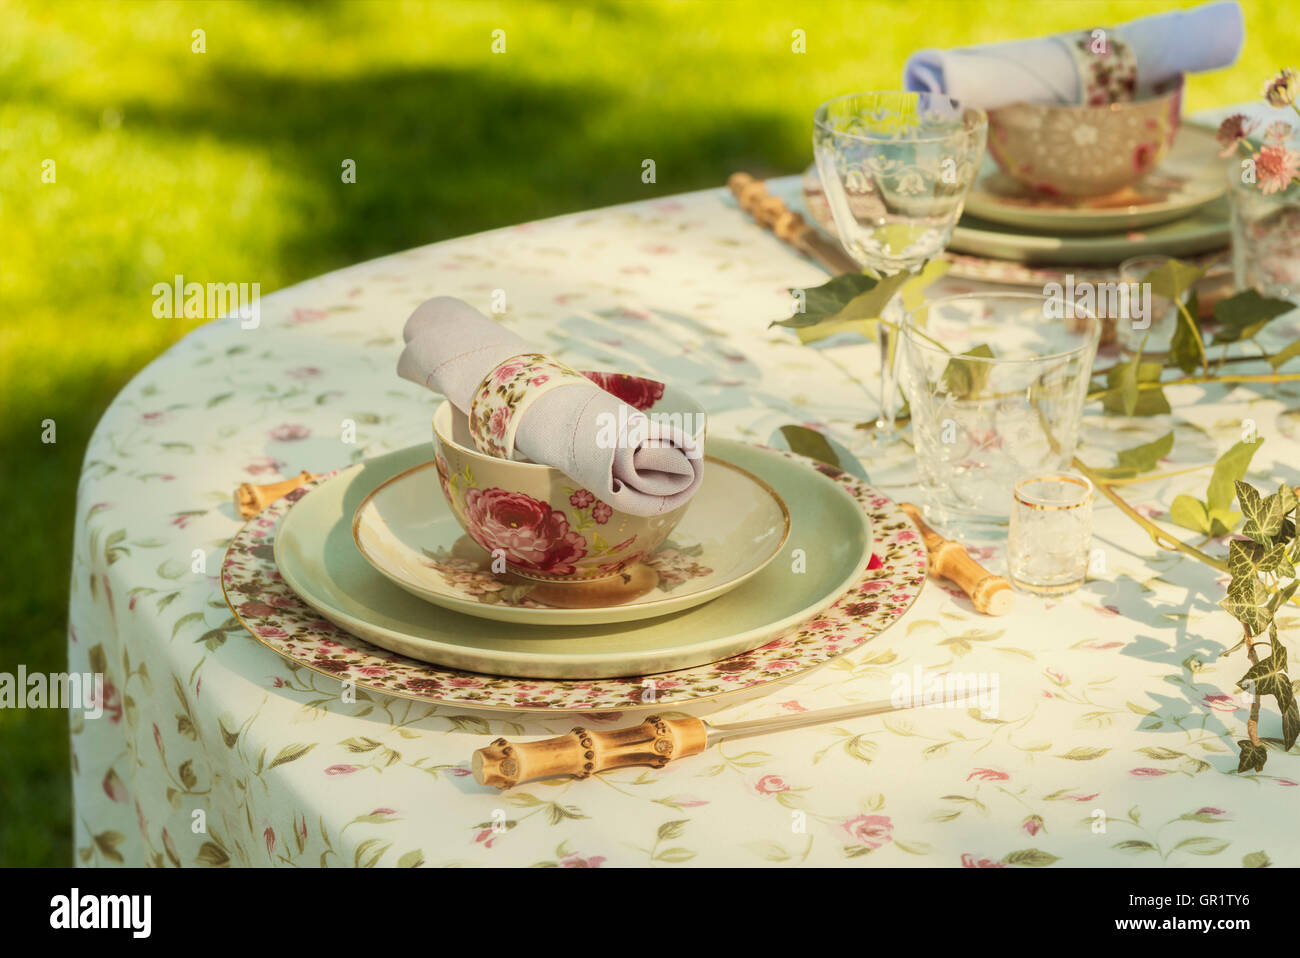 Image of table setting for garden party or wedding. - Stock Image